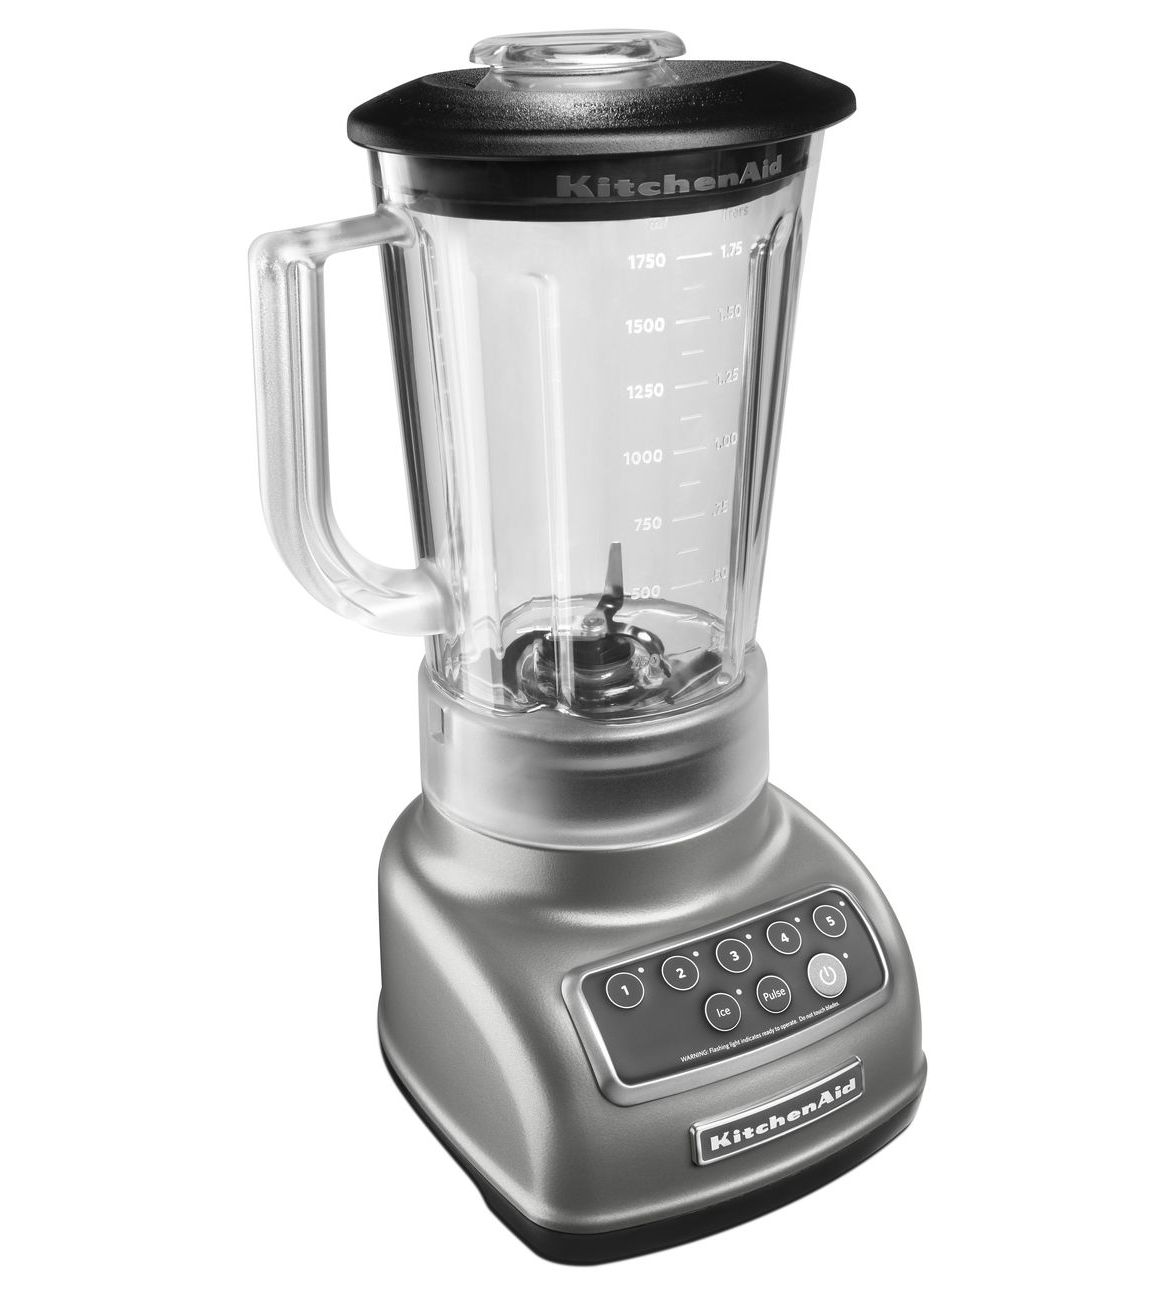 ... stand mixers countertop appliances prev next back to kitchenaid stand